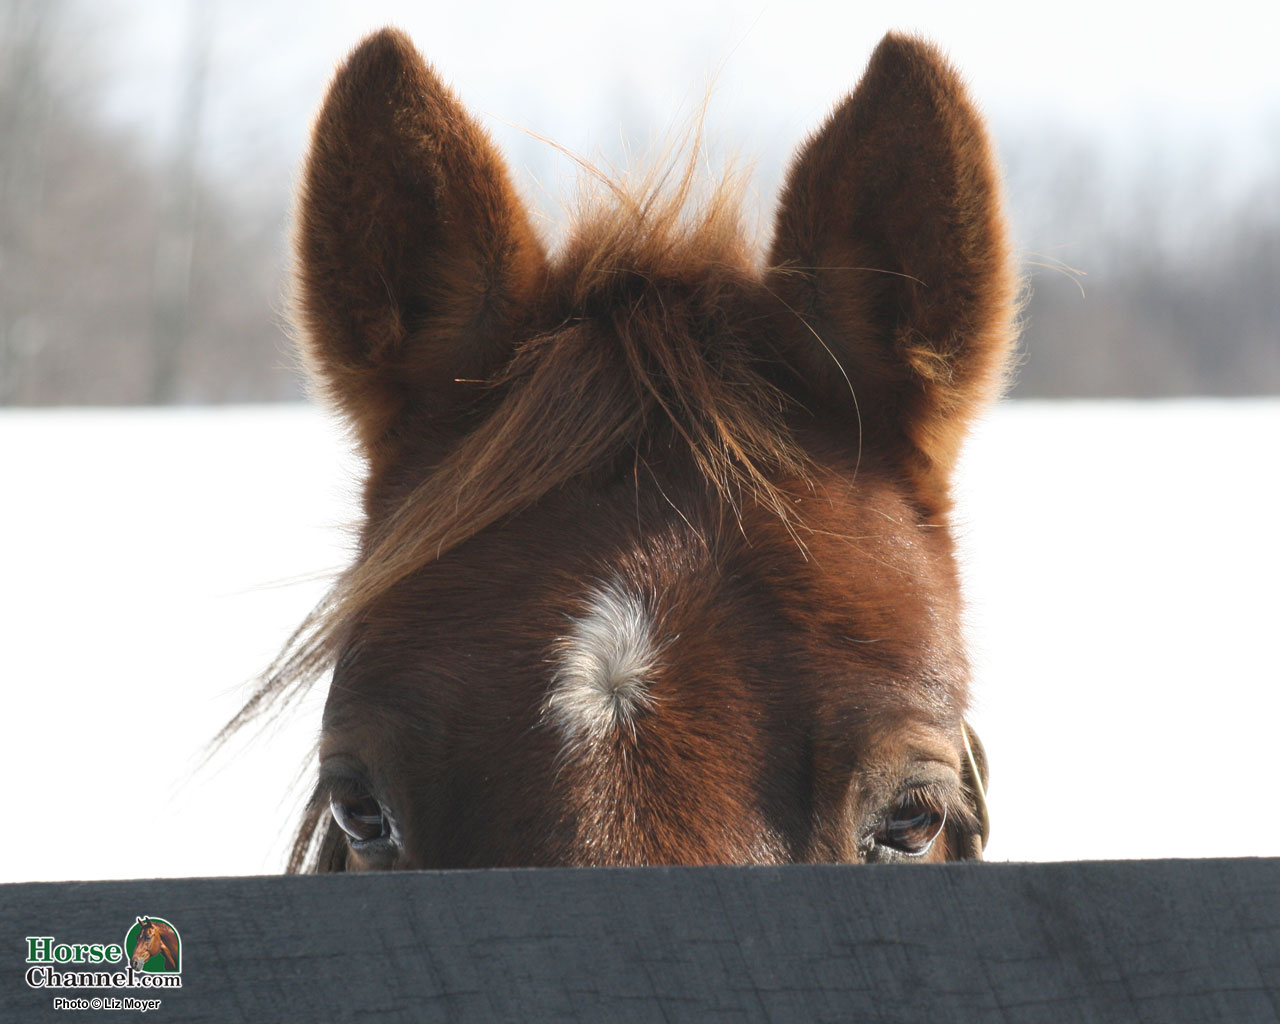 Winter Equine Screensaver and Wallpapers 1280x1024